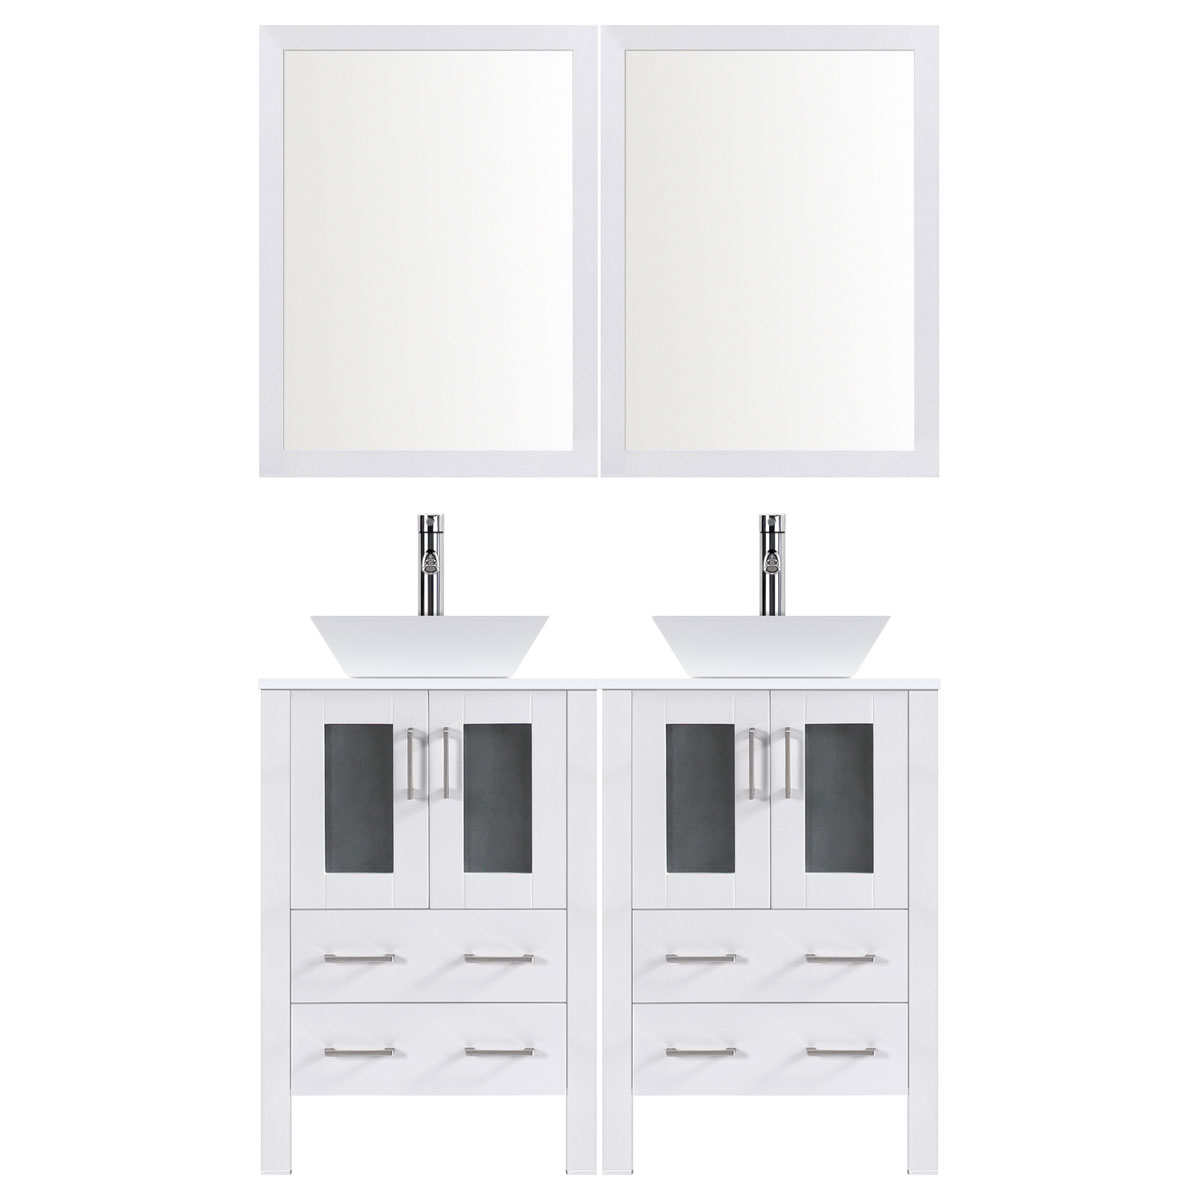 "48"" Modern Bathroom Vanity Set with Mirror and Sink LV2-C10-48-W (White)"